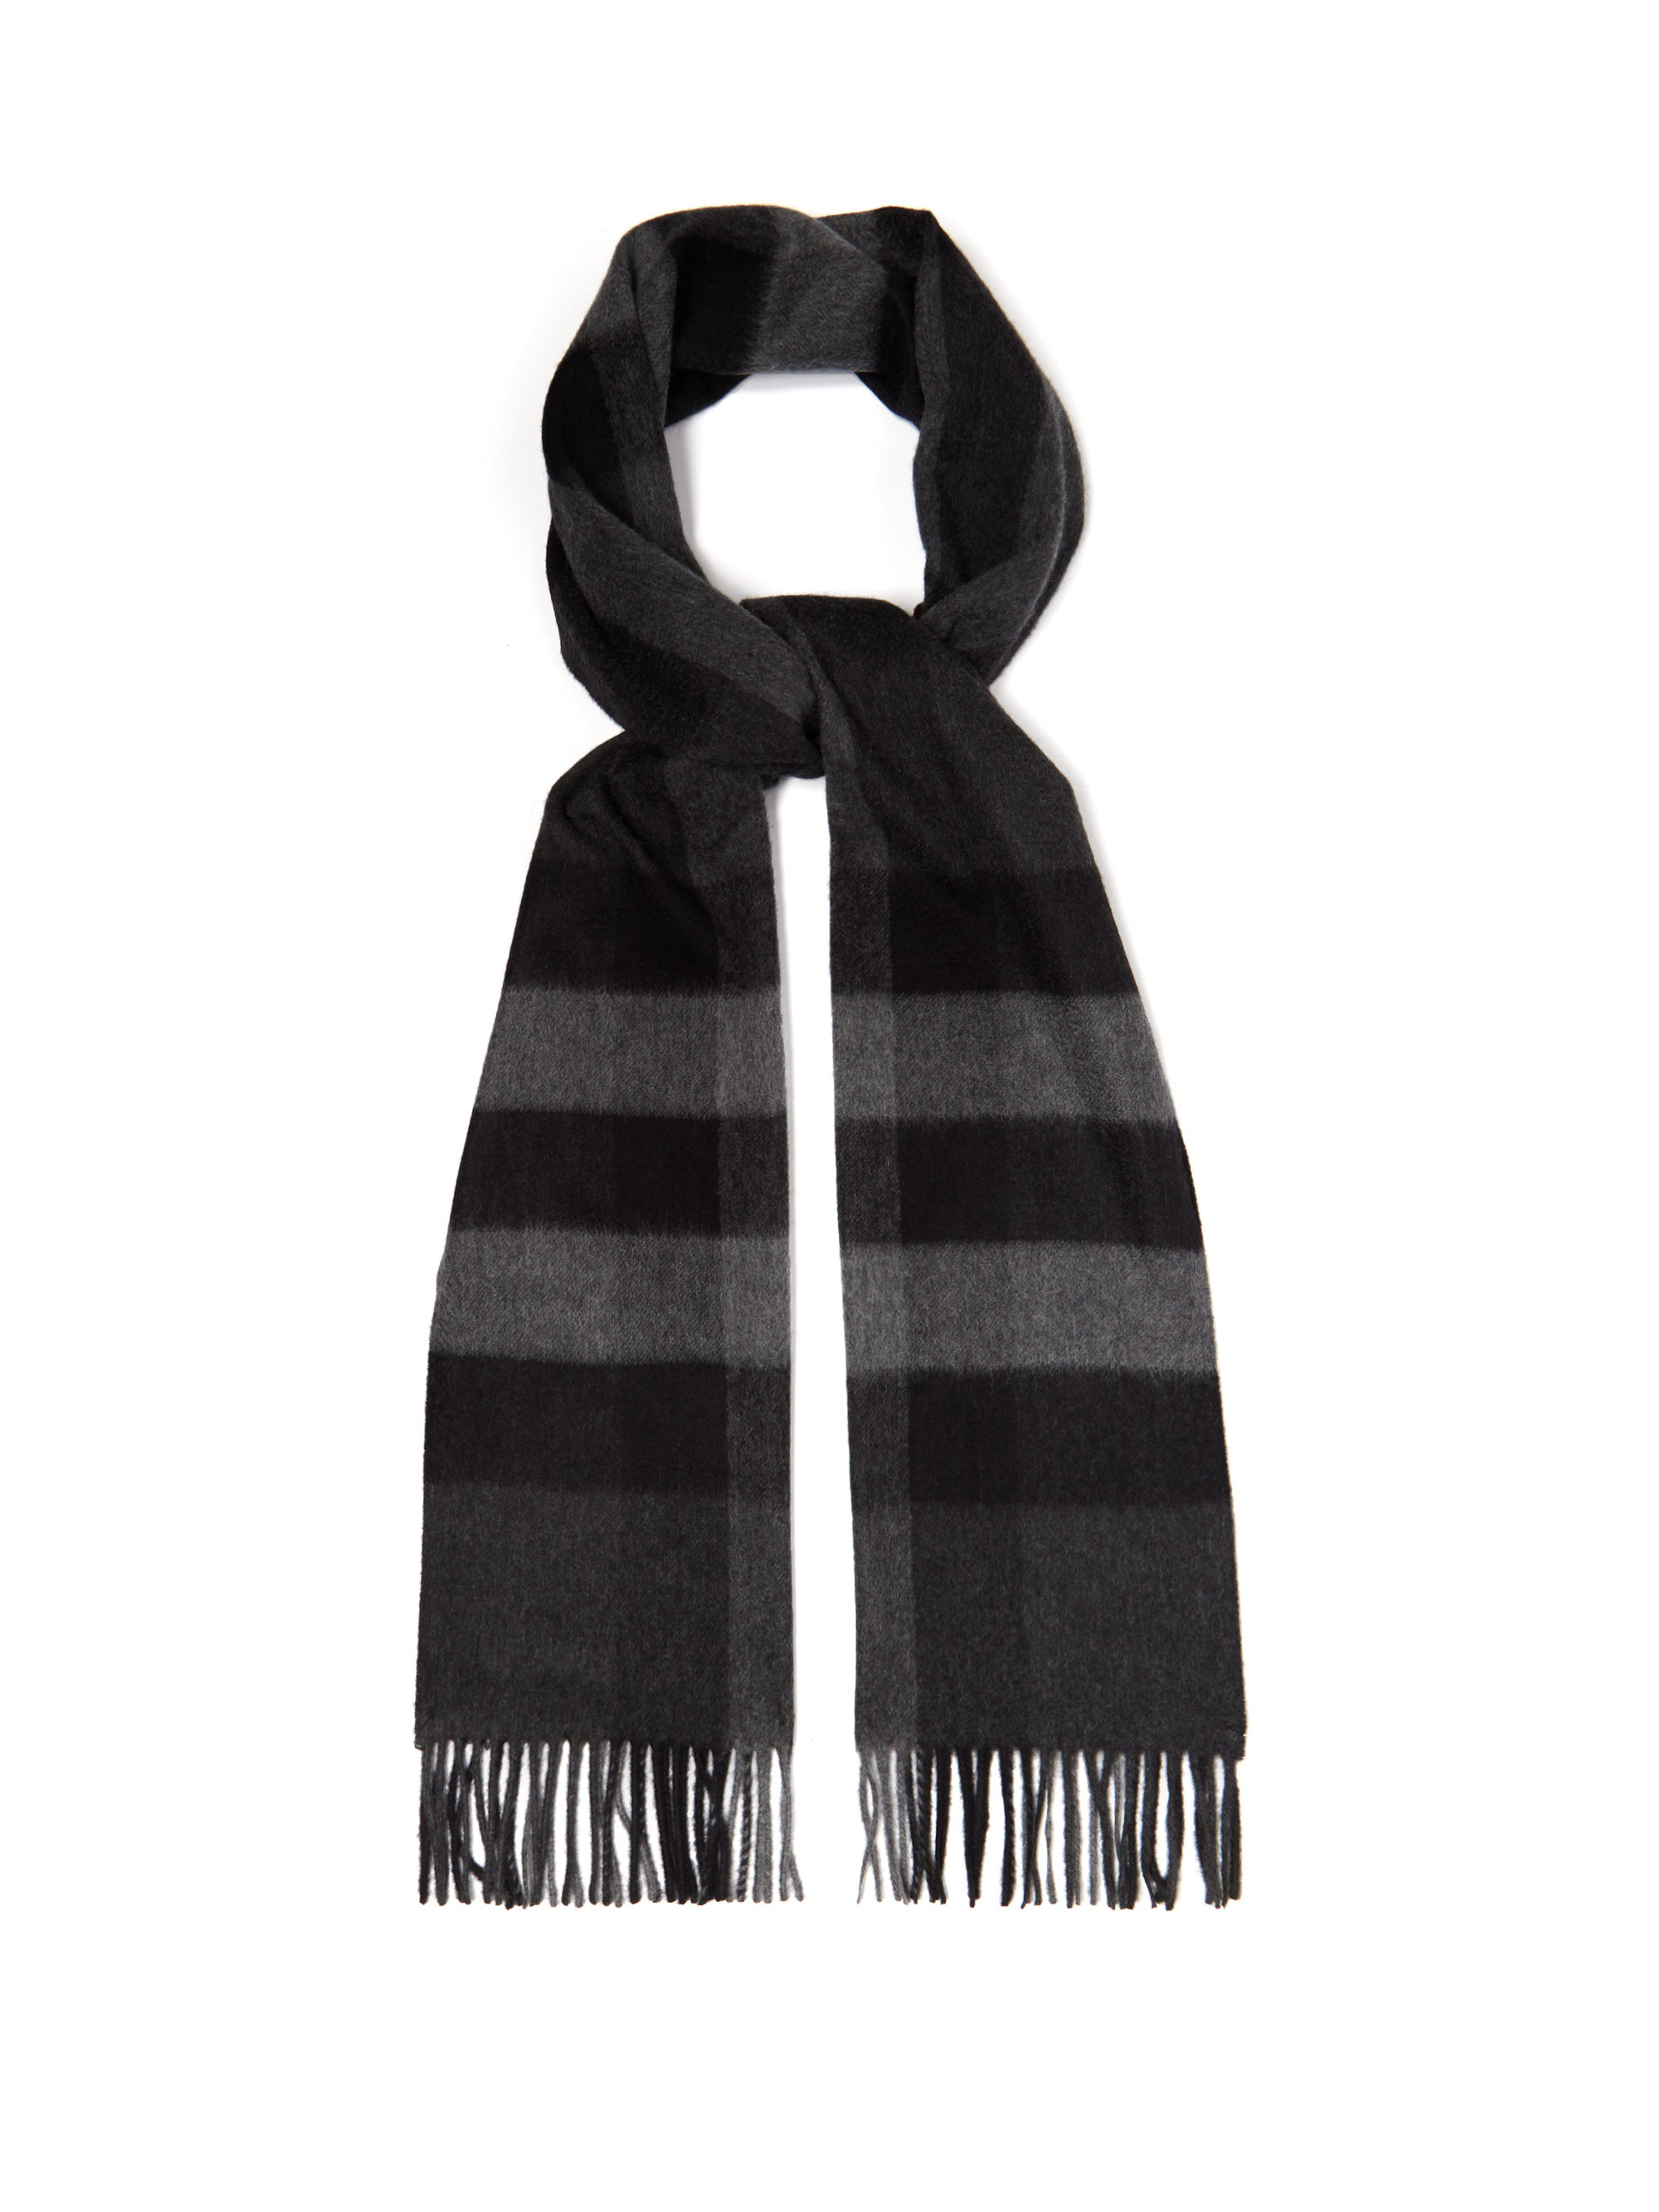 aa7ab7812583 Burberry Half Mega Check Cashmere Scarf in Gray for Men - Lyst